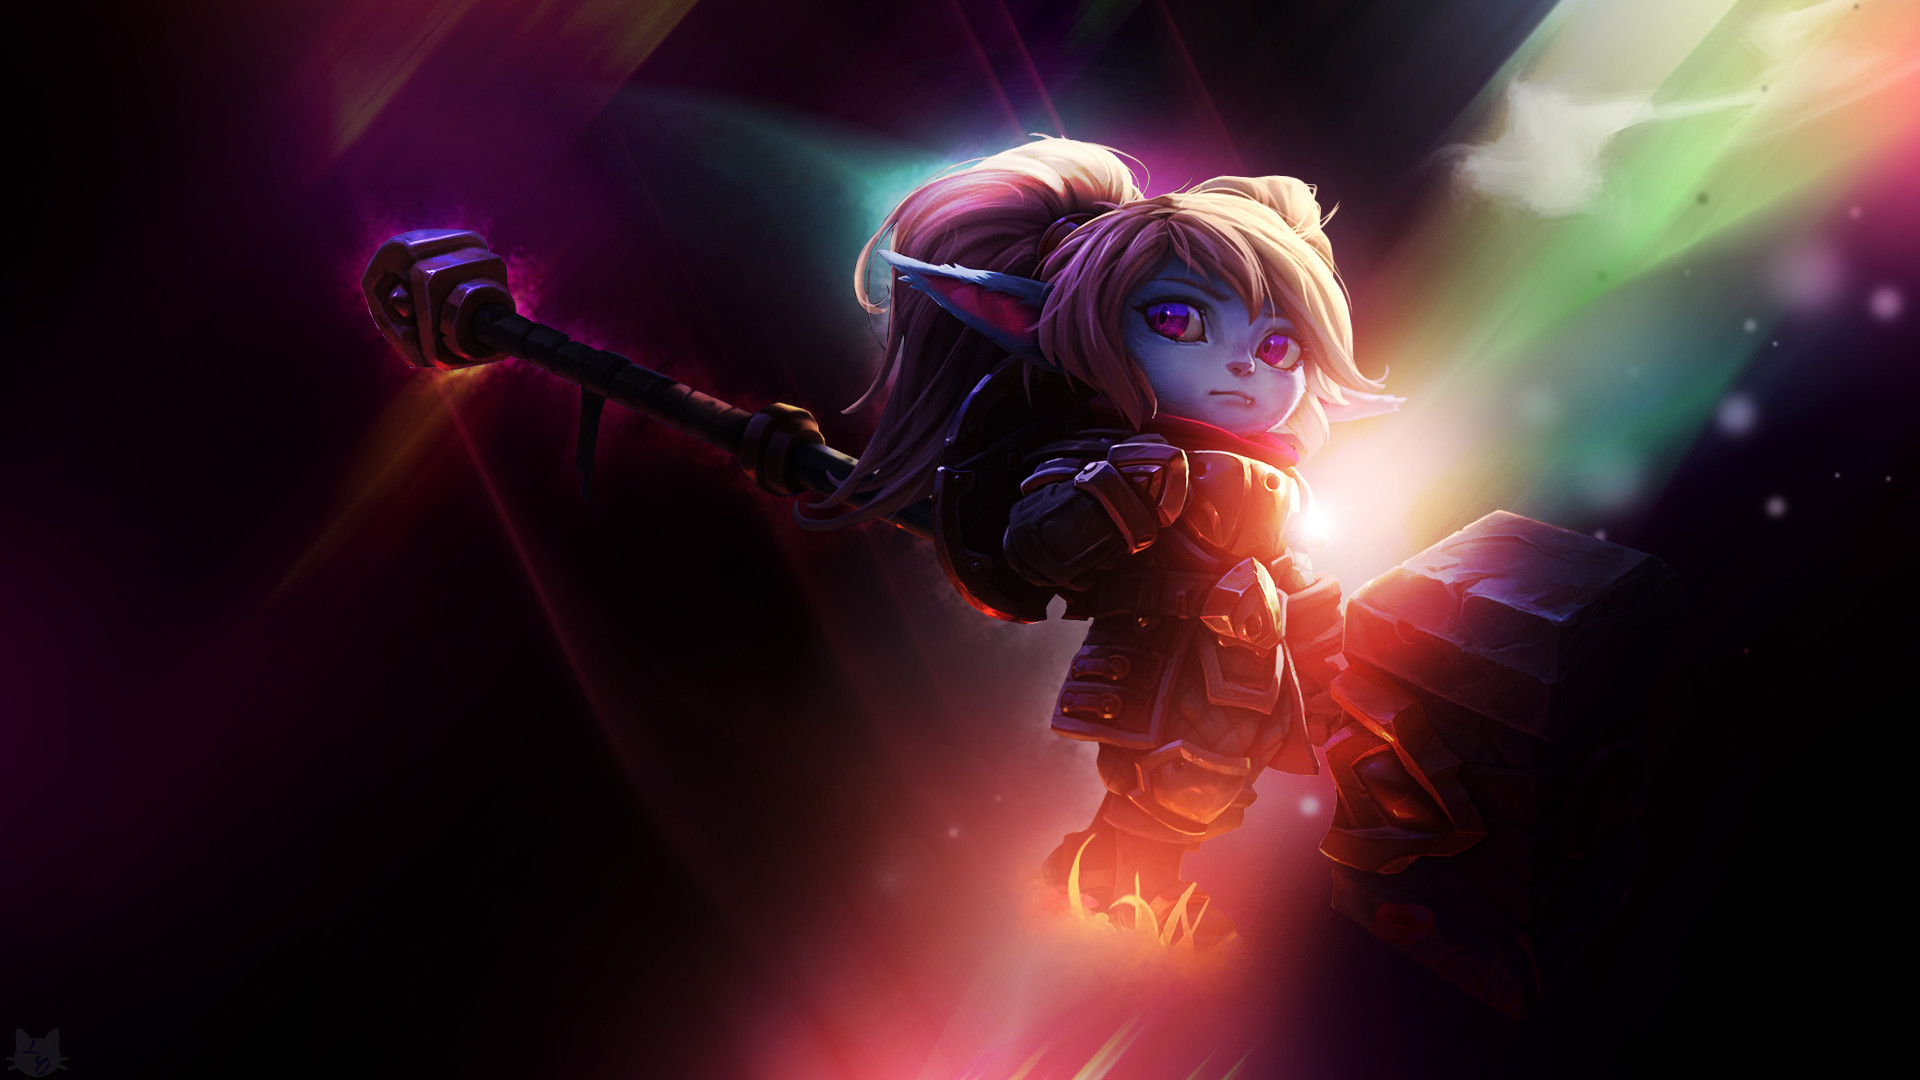 1920x1080 Poppy League of Legends Wallpapers